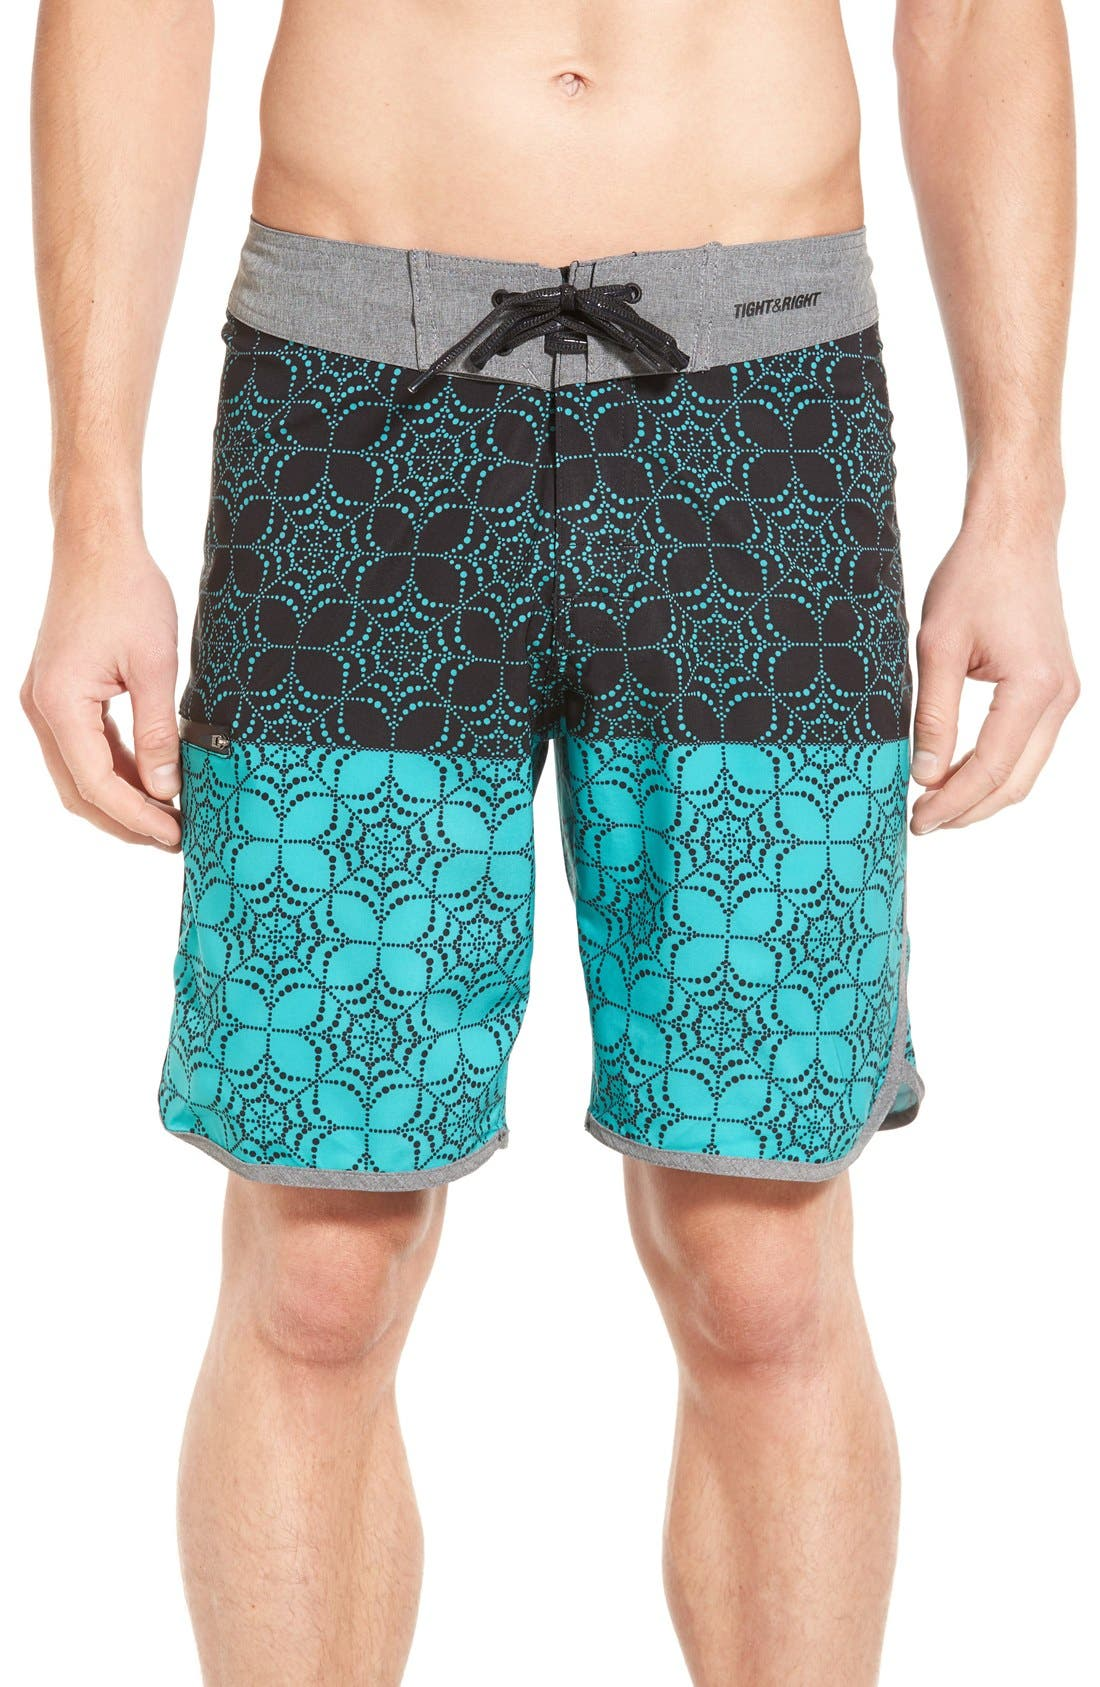 'Quest' Board Shorts,                             Main thumbnail 1, color,                             Black/ Aqua